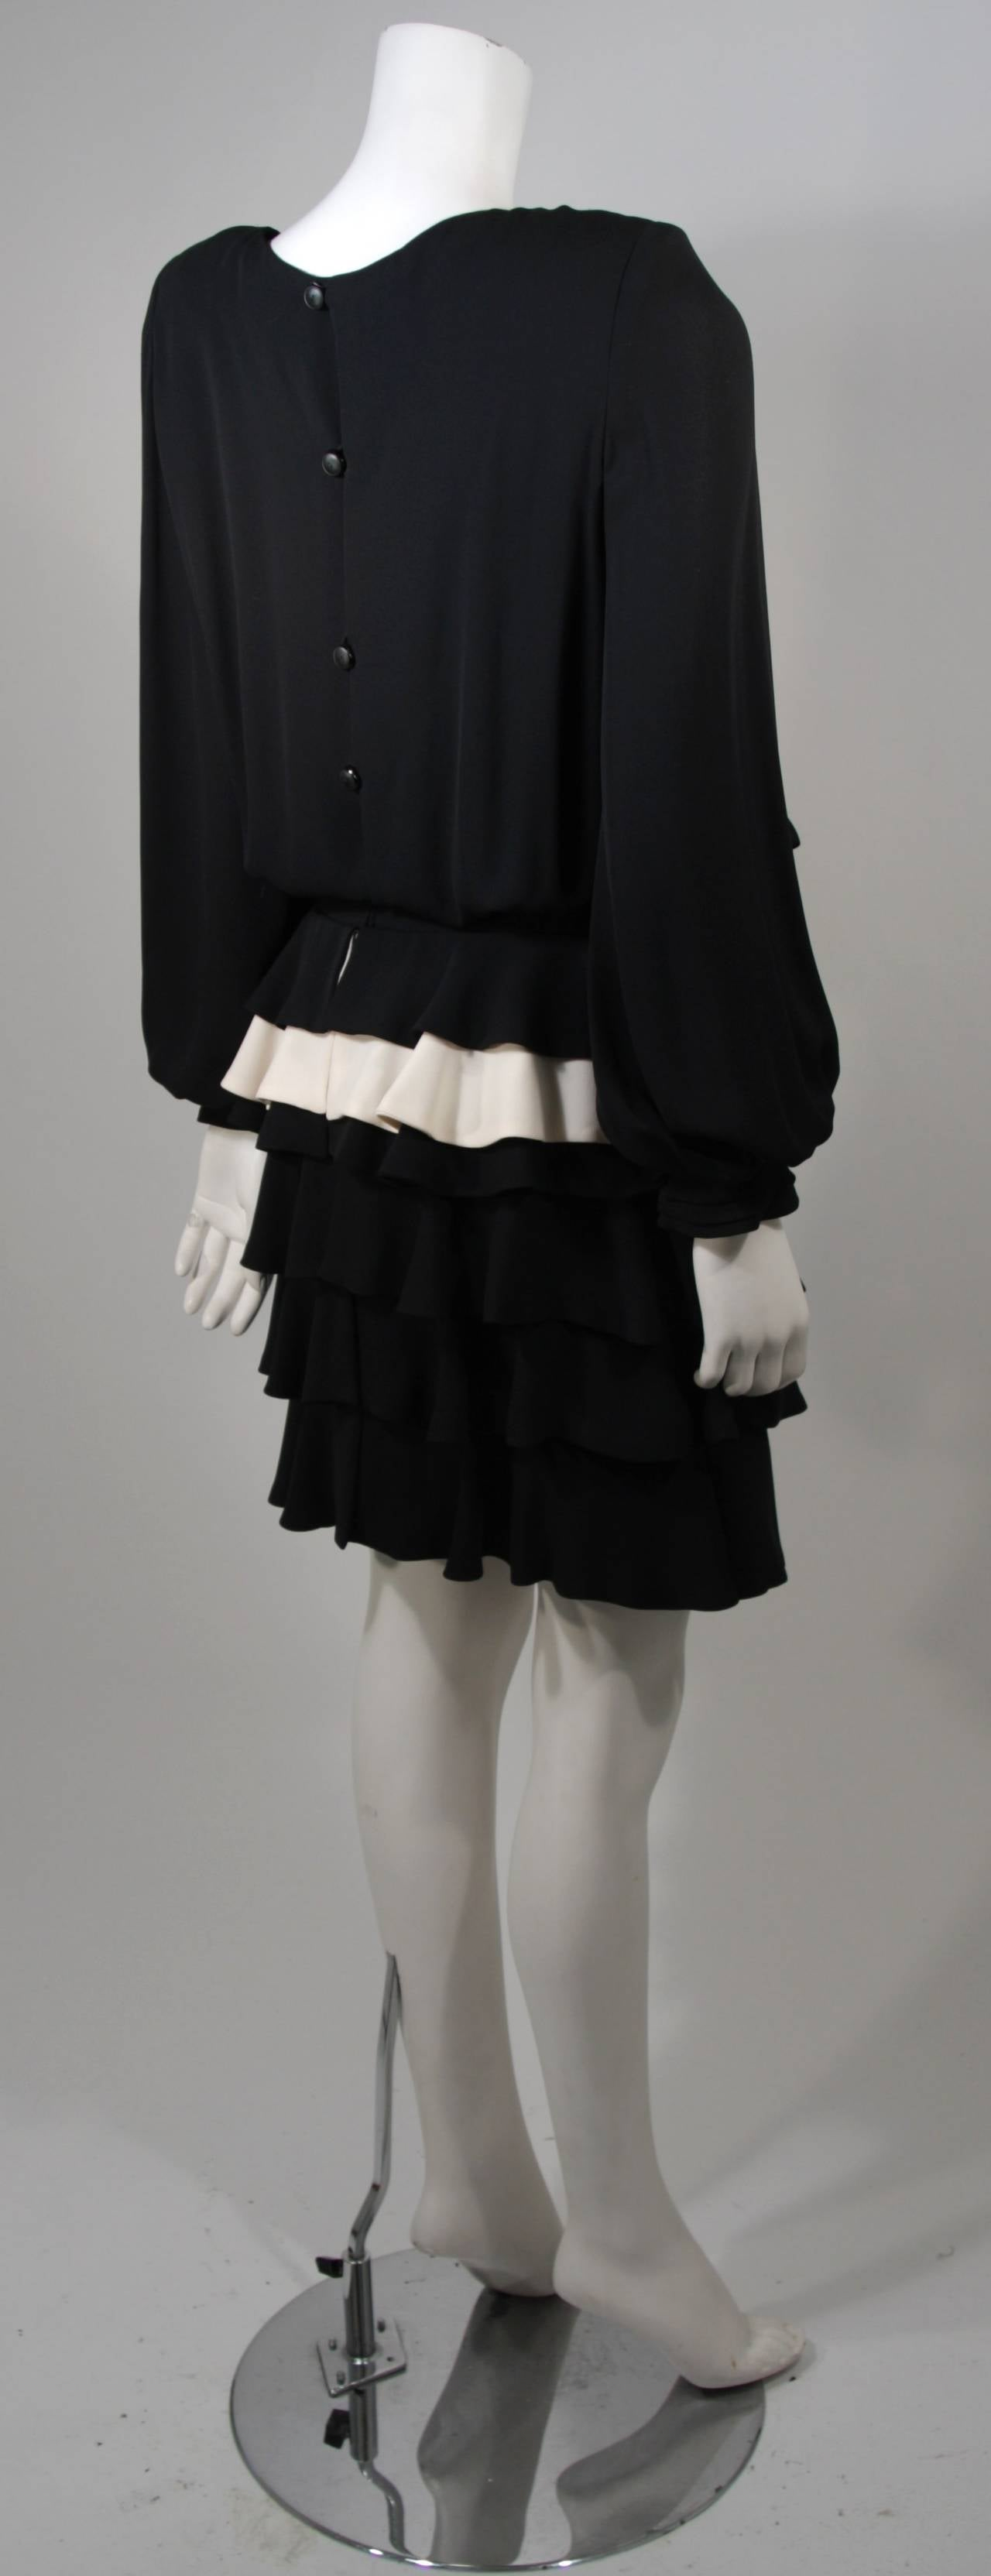 Galanos Black and Cream Ruffled Cocktail Dress with Dramatic Neckline Size 2 7